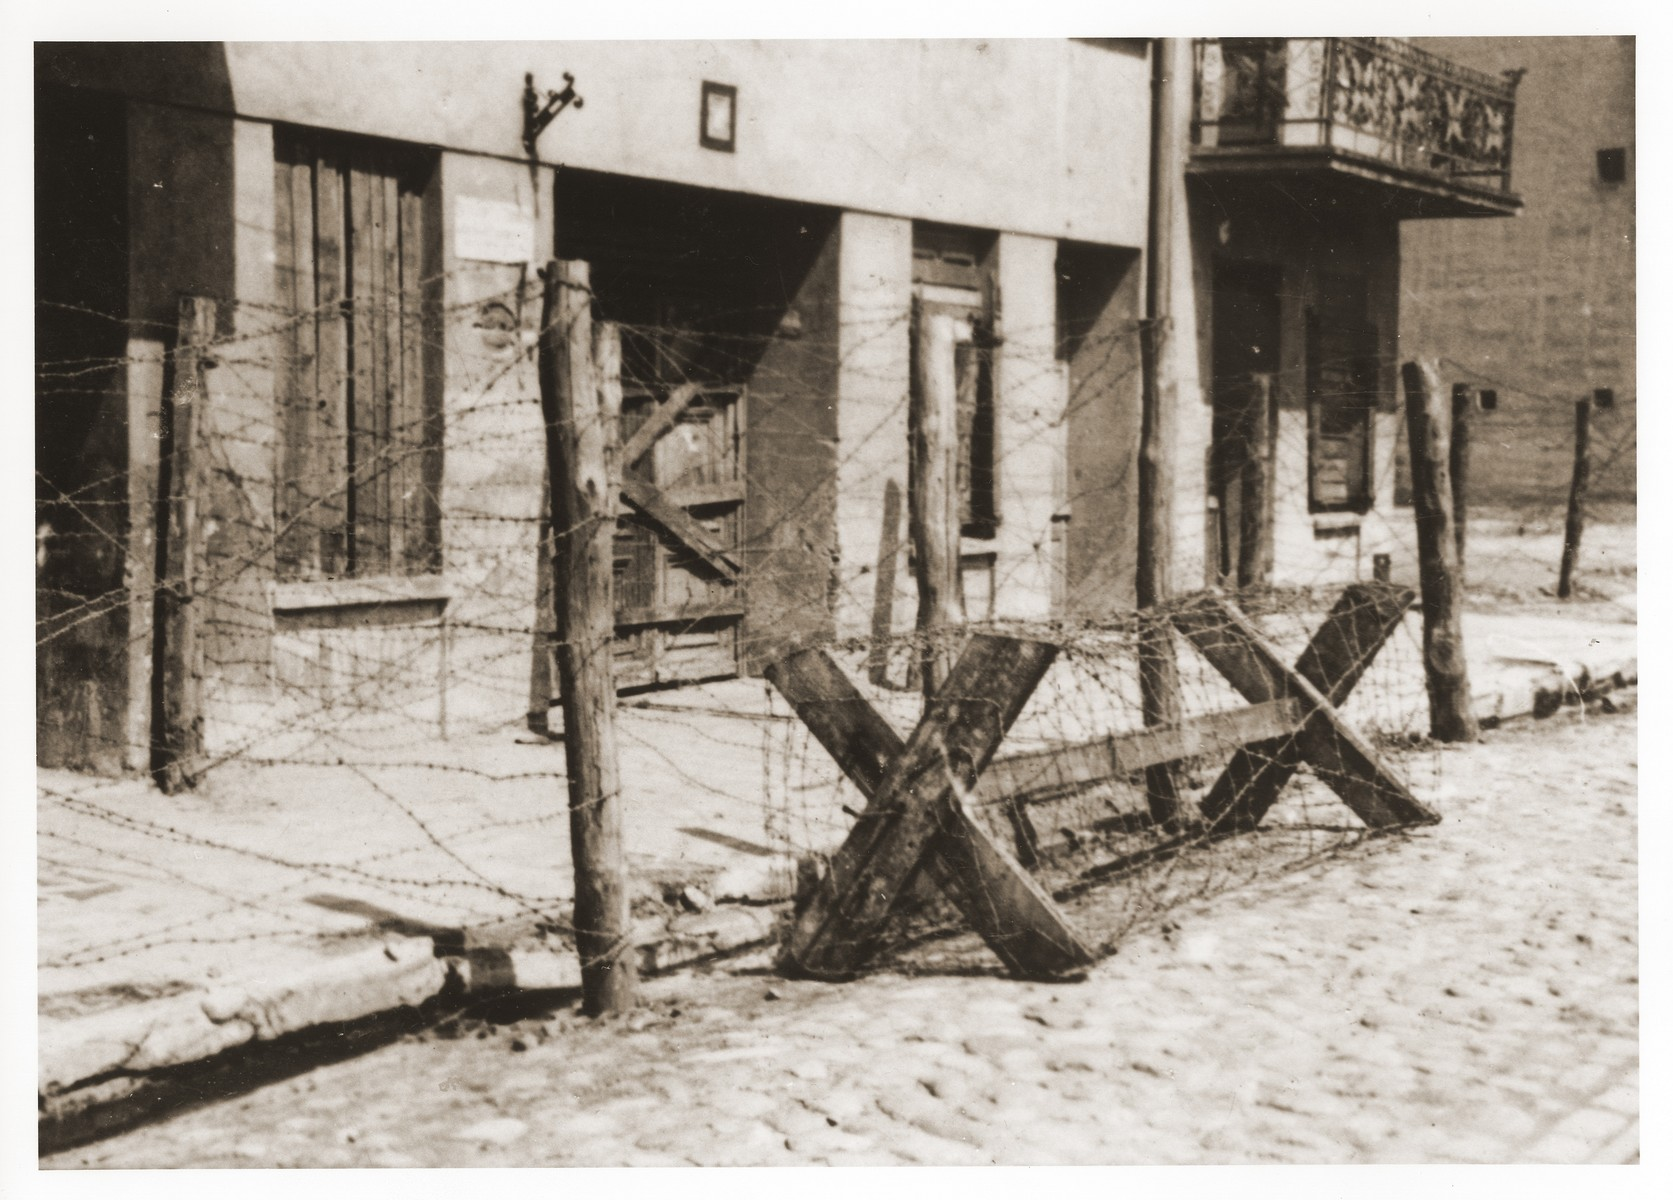 View of the entrance to the Gypsy camp on Brzezinska Street in the Lodz ghetto after its liquidation.  In the fall of 1941, 5007 Austrian Gypsies of the Lalleri tribe were deported to Lodz, where they were housed in a block of buildings on Brzezinska Street.  The Gypsy camp was adjacent to the ghetto but separated from it by a barbed-wire enclosure.  The Gypsy population remained only for a few months before being deported with the first transports to Chelmno early in 1942.